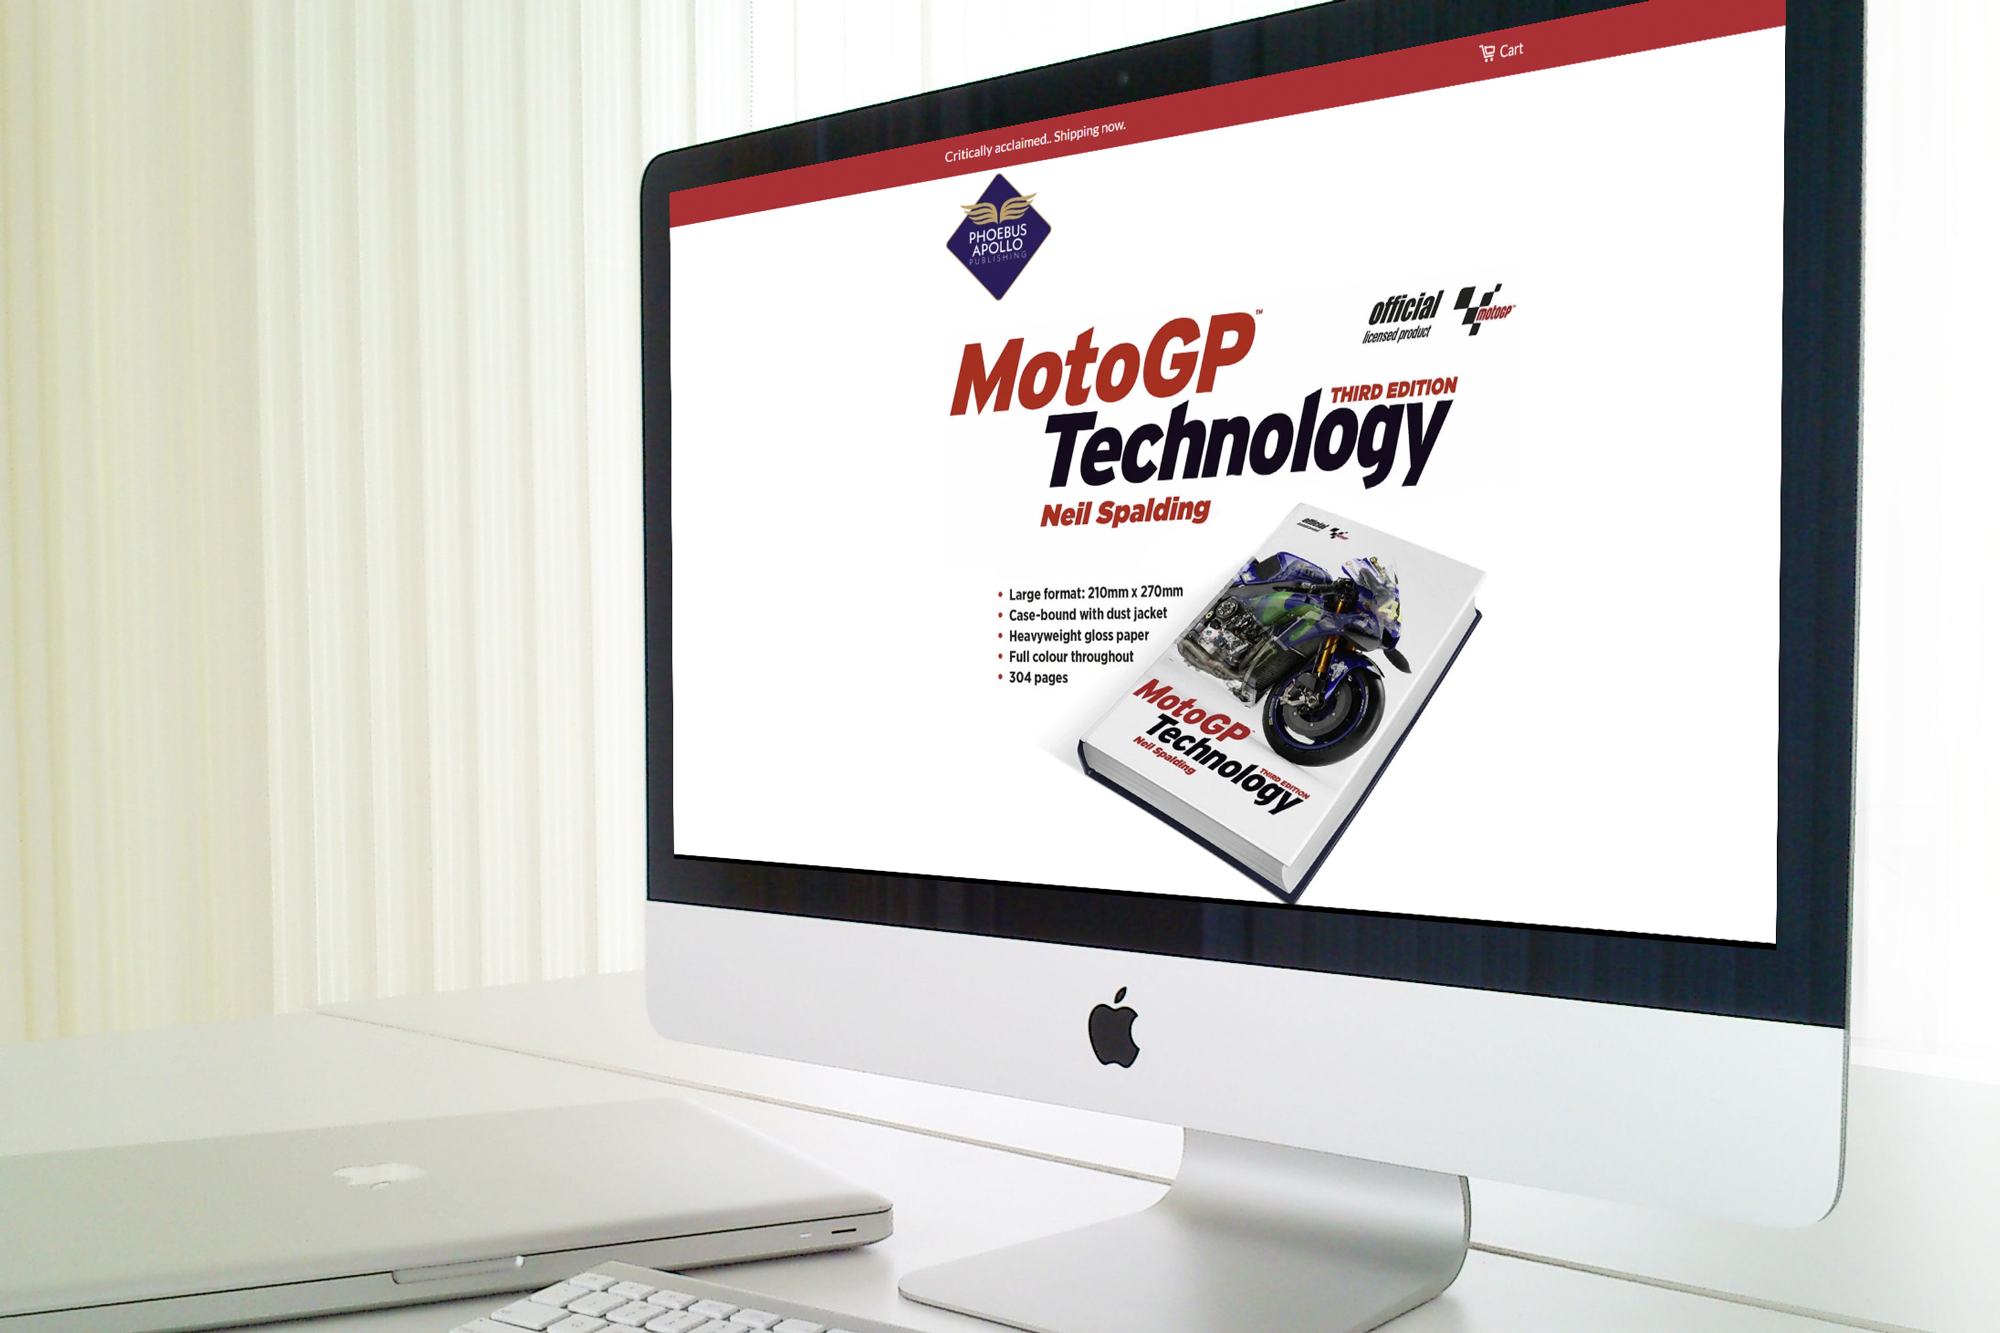 MotoGP Technology website screenshot displayed on an imac